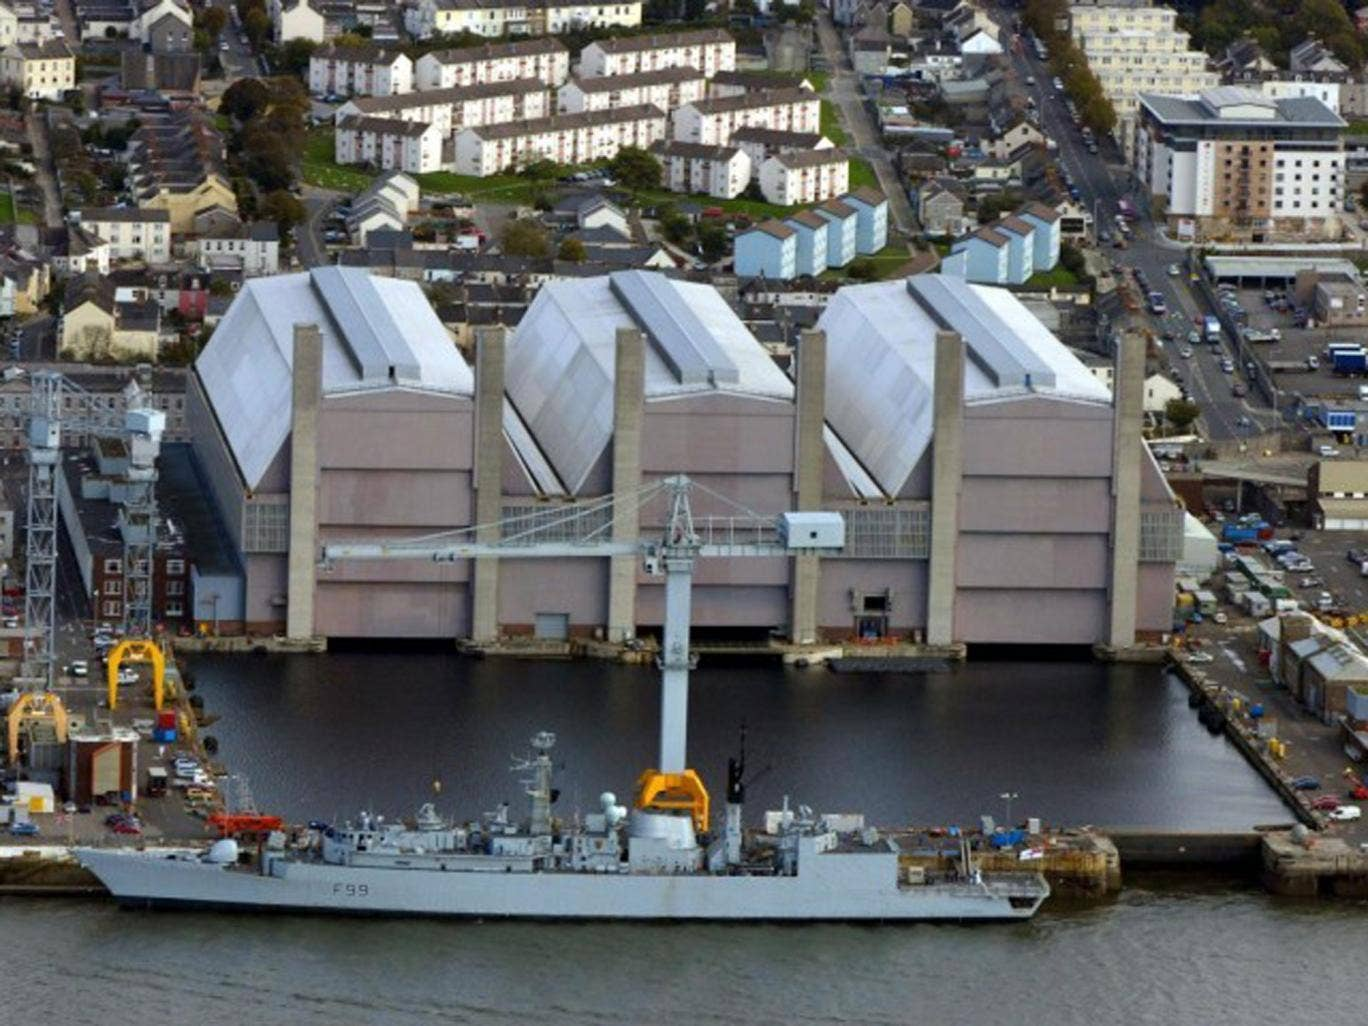 Devonport dockyard, Plymouth, repairs and refuels Royal Navy nuclear submarines